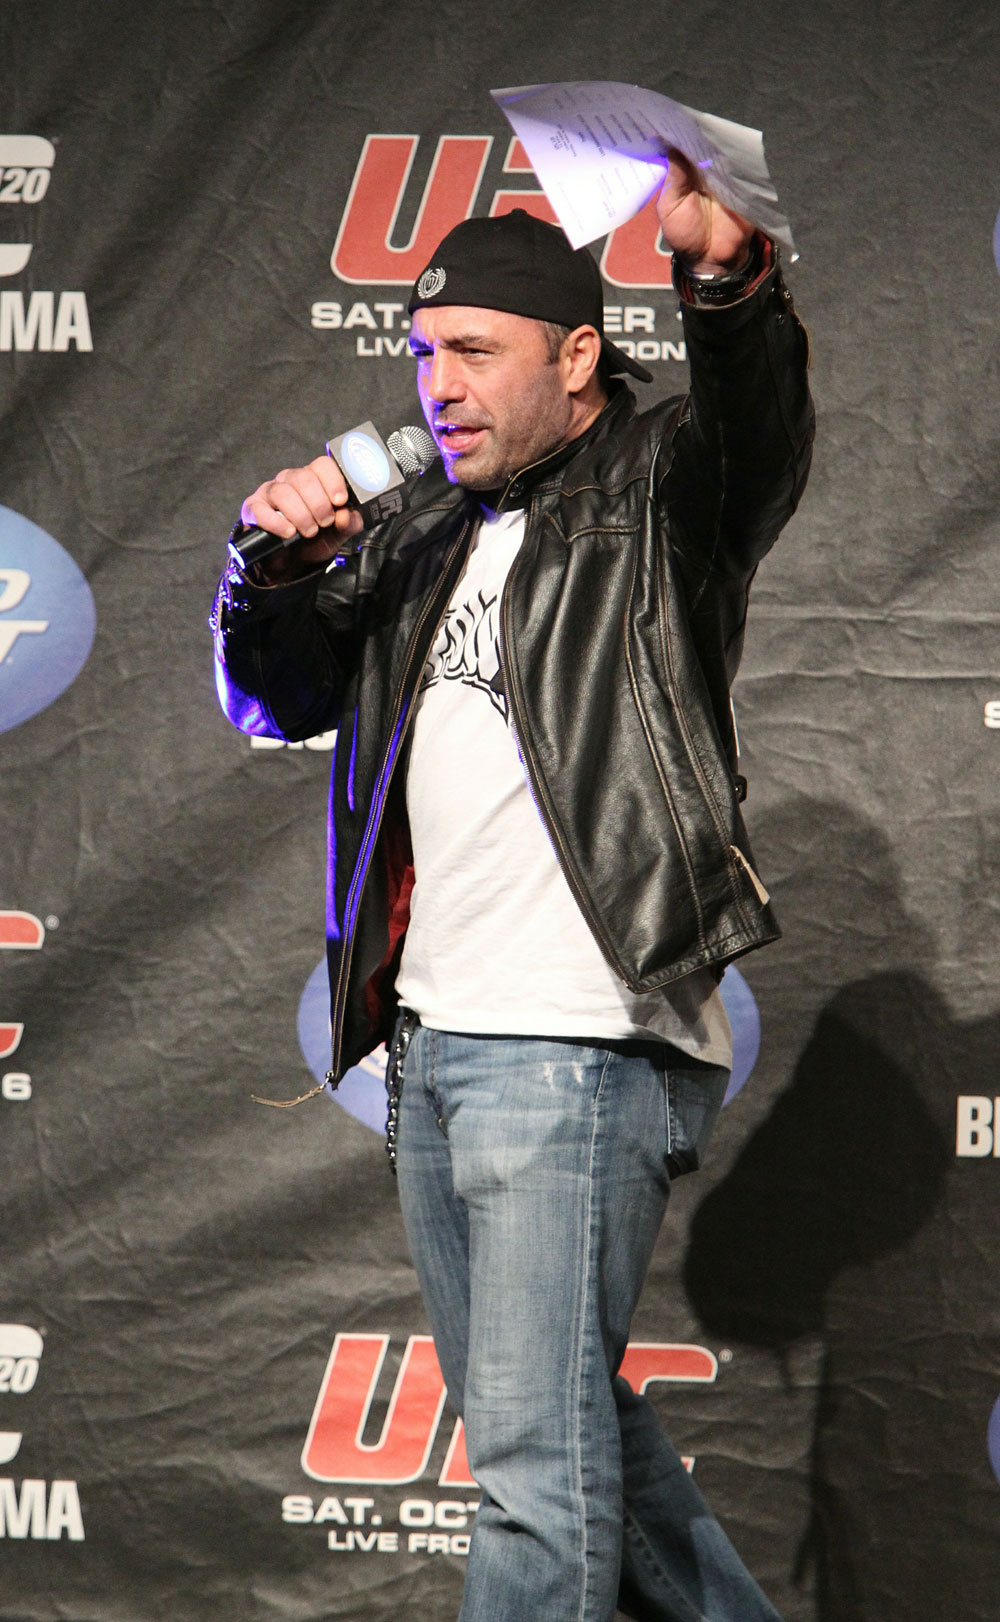 Joe Rogan at the UFC 120 Weigh-Ins in London.